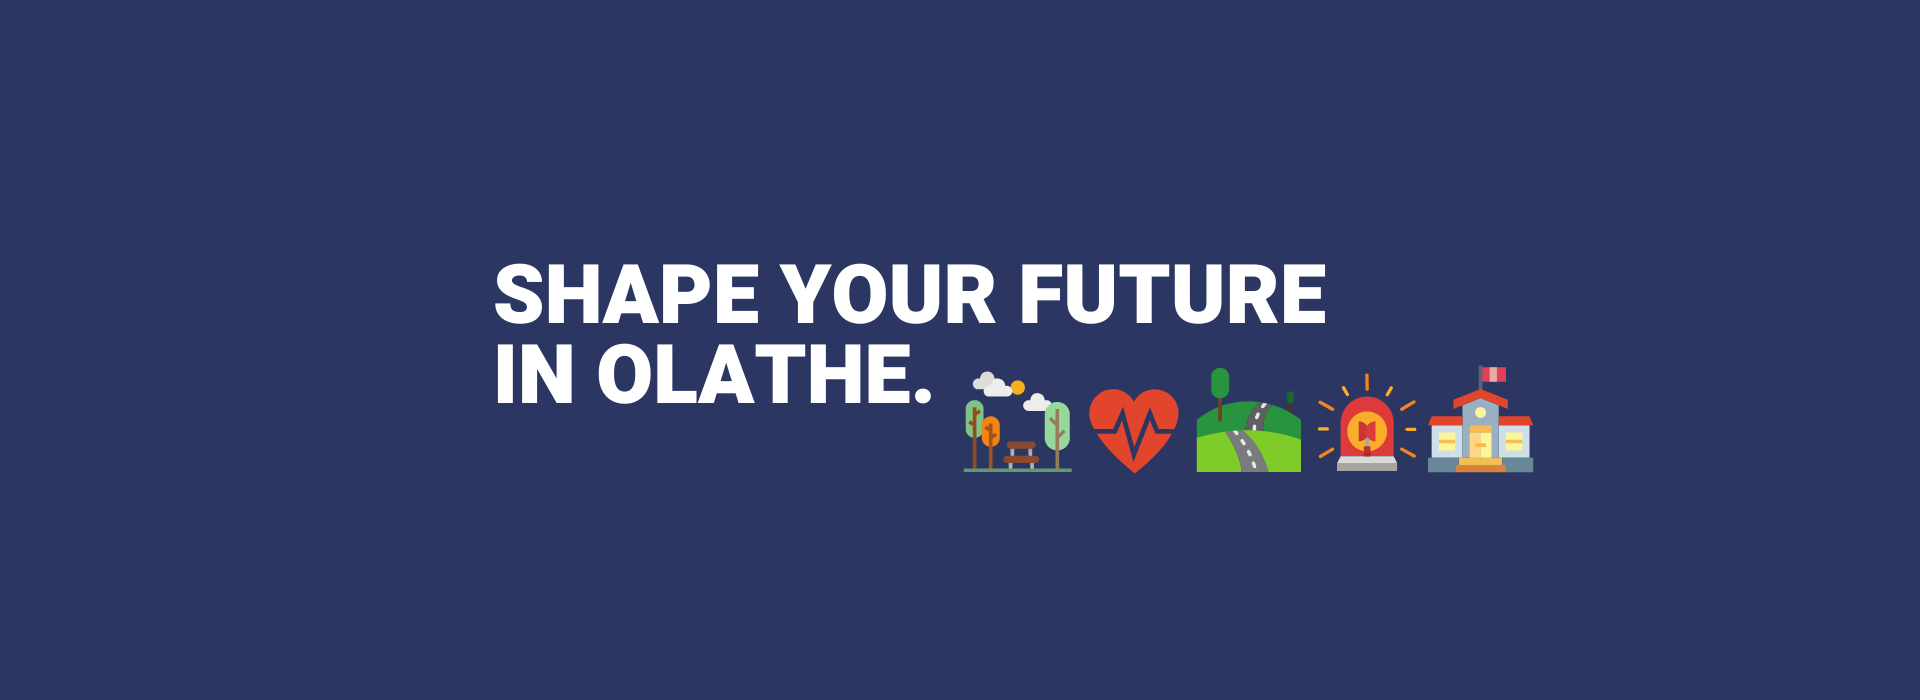 Shape your future in Olathe - 2020 Census